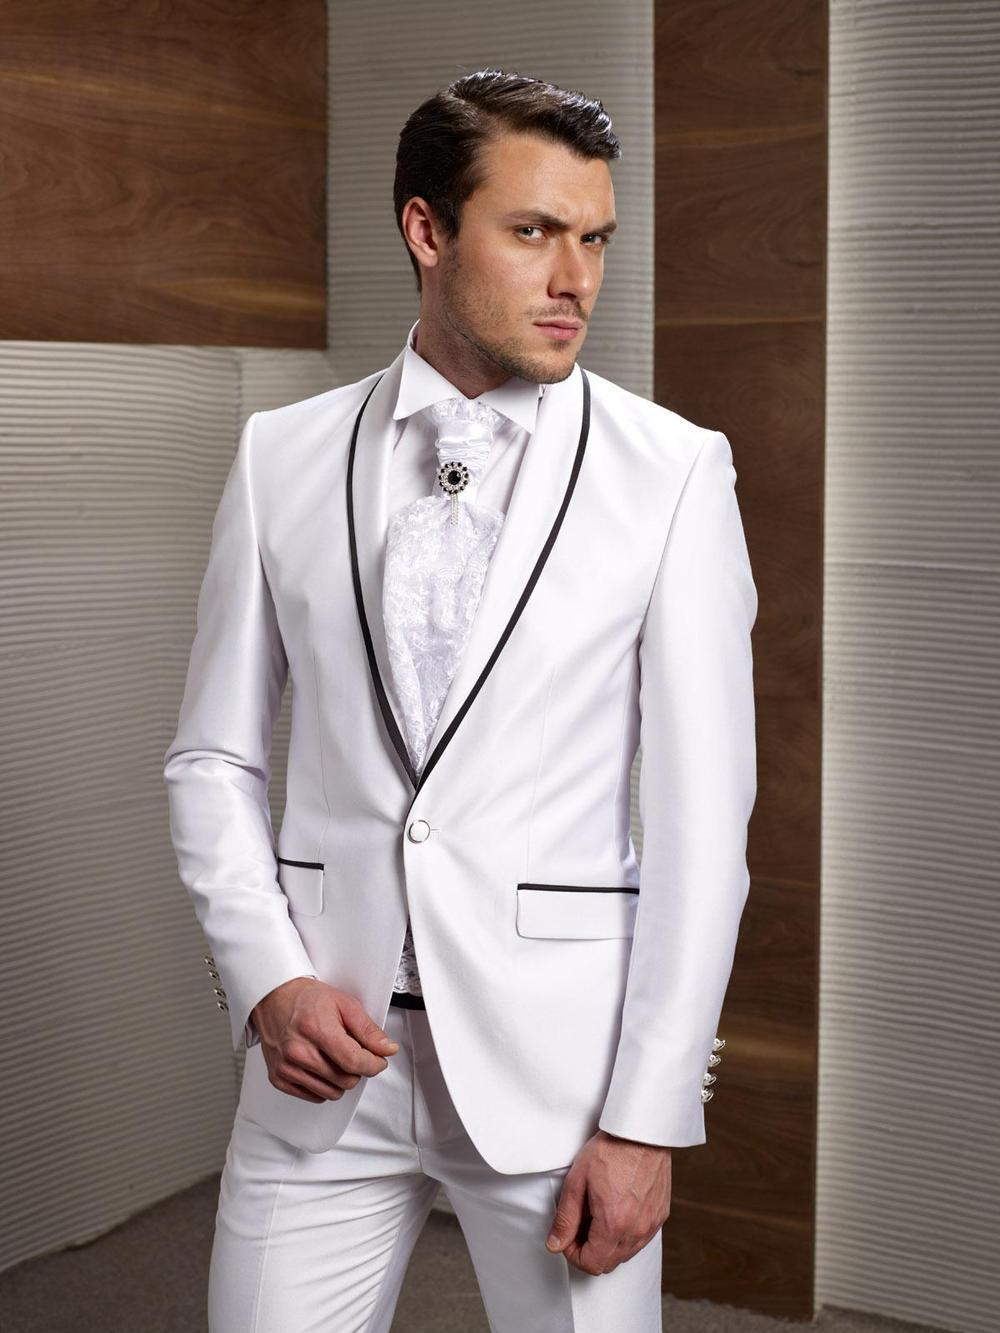 White Wedding Suits For Men | My Dress Tip